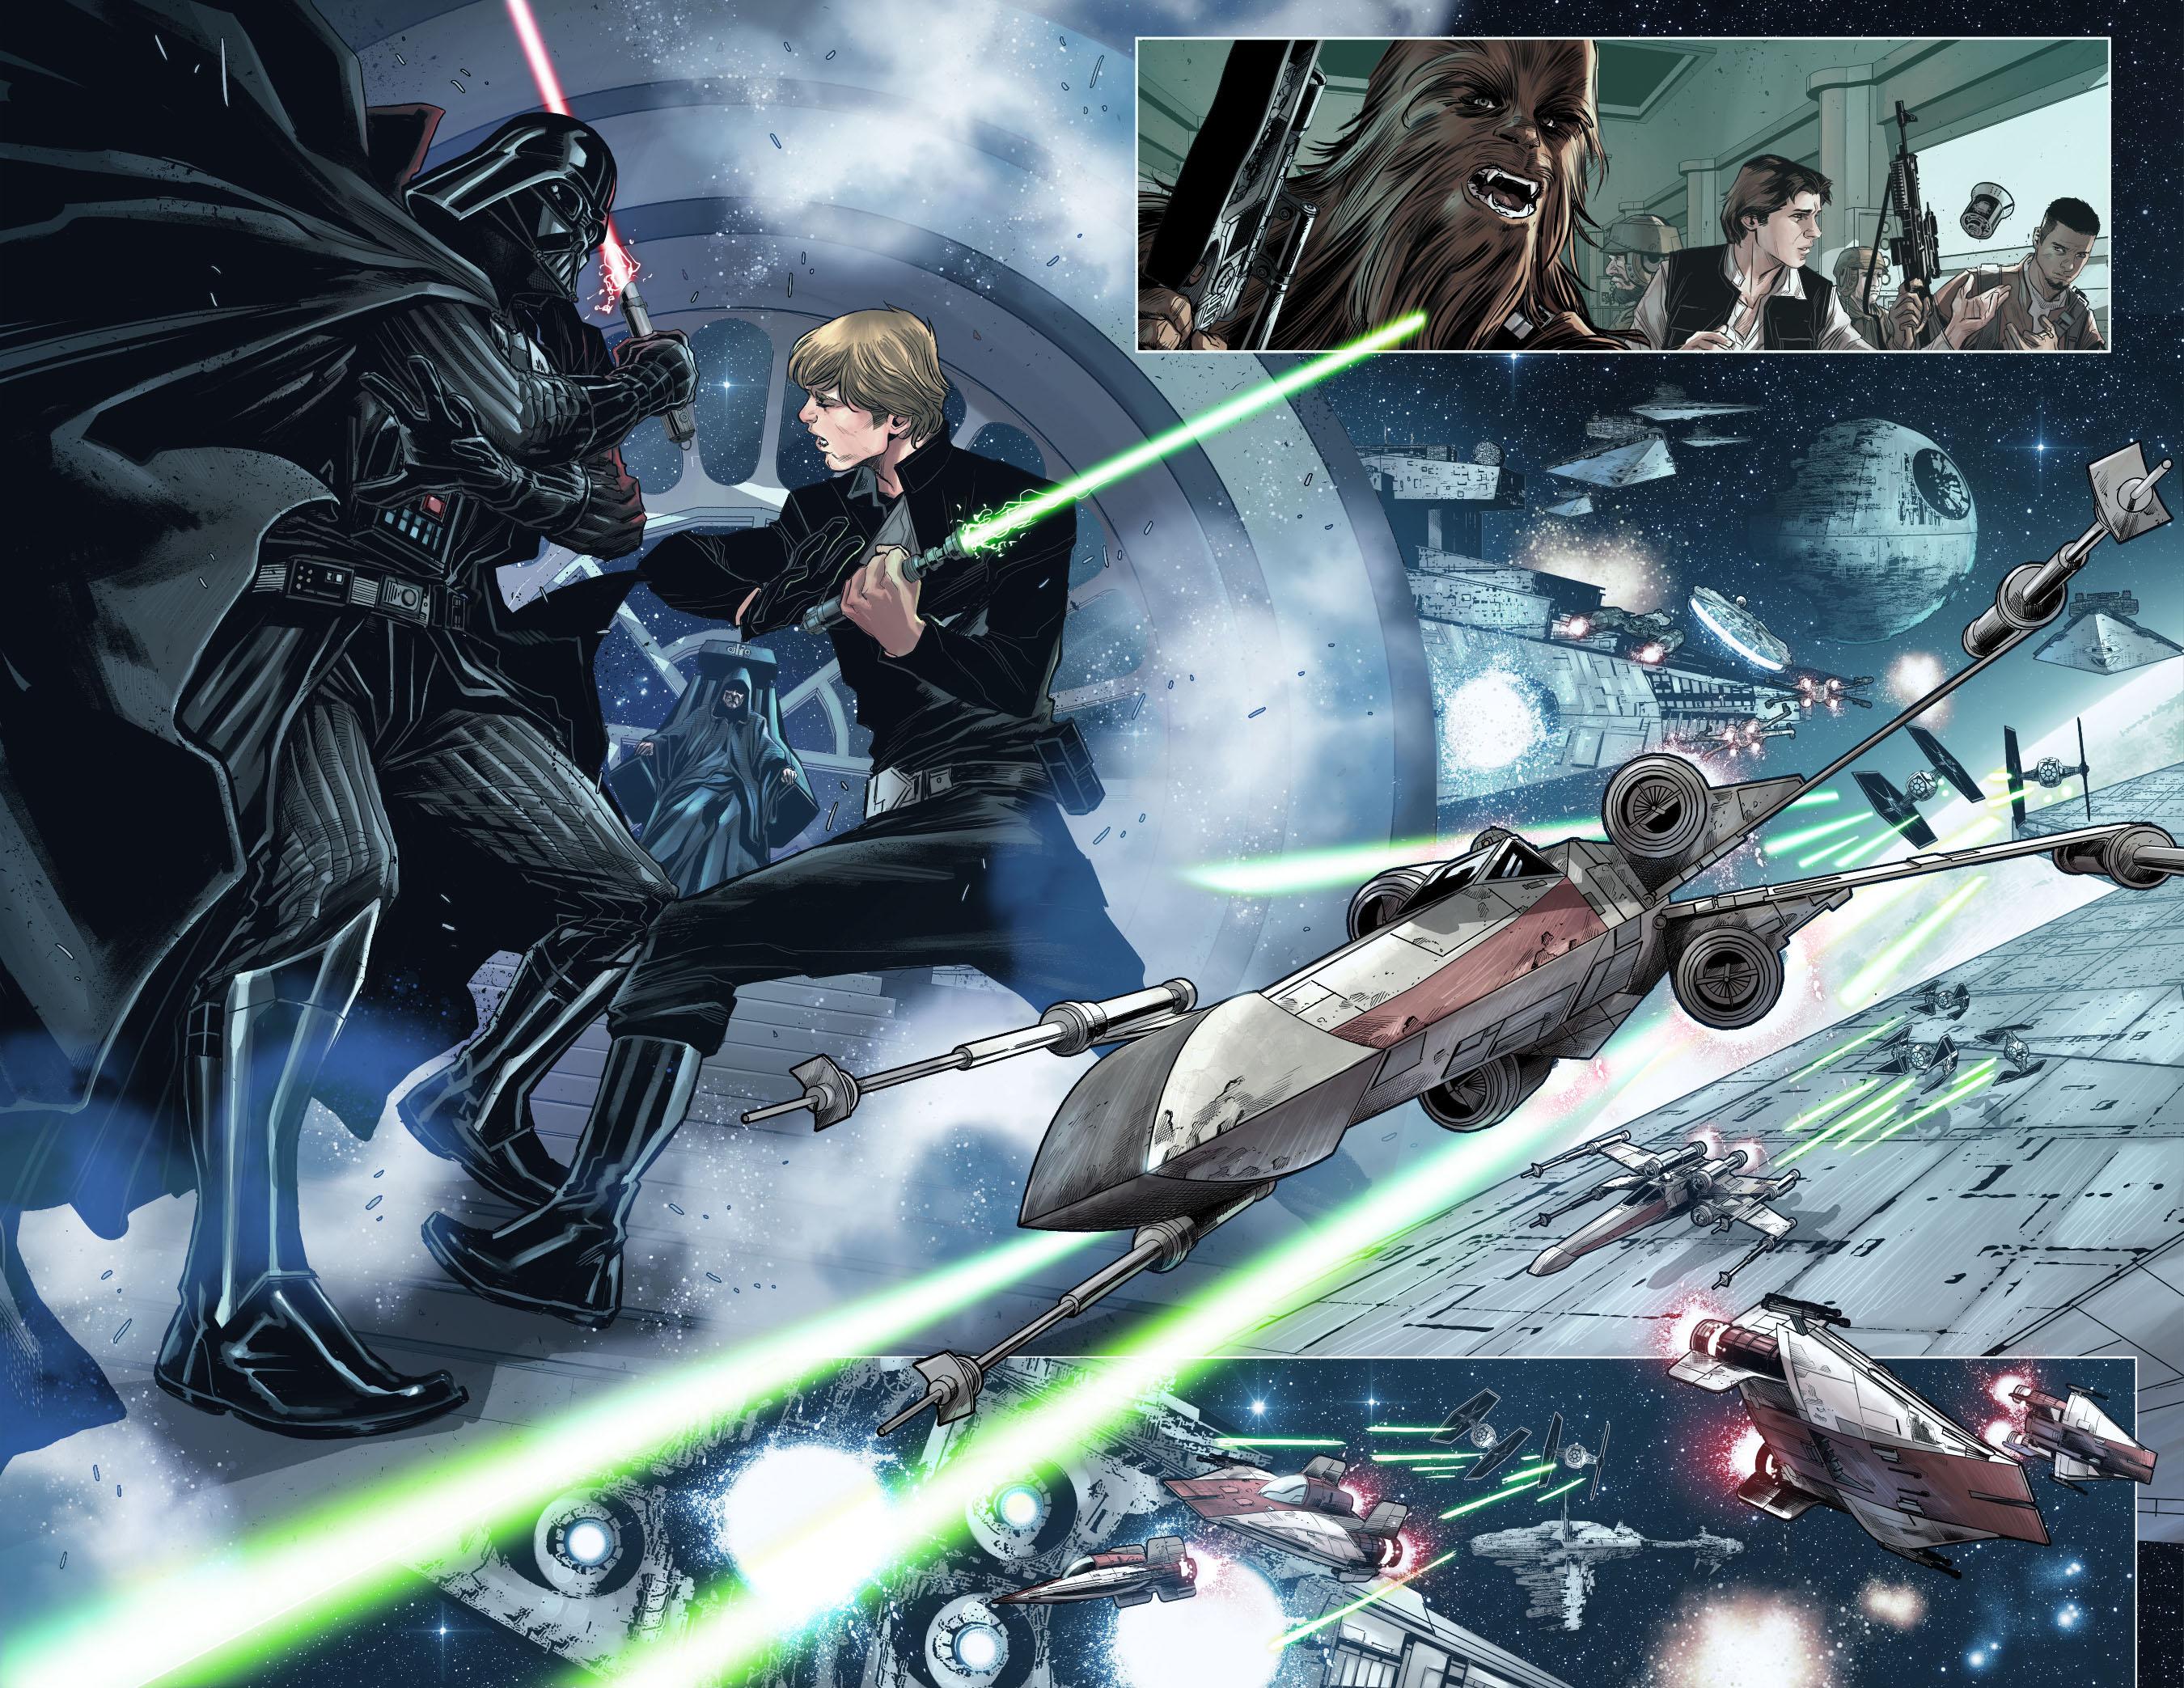 http://cdn.fansided.com/wp-content/blogs.dir/319/files/2015/08/Journey_to_Star_Wars_The_Force_Awakens_Shattered_Empire_Preview_1.jpg